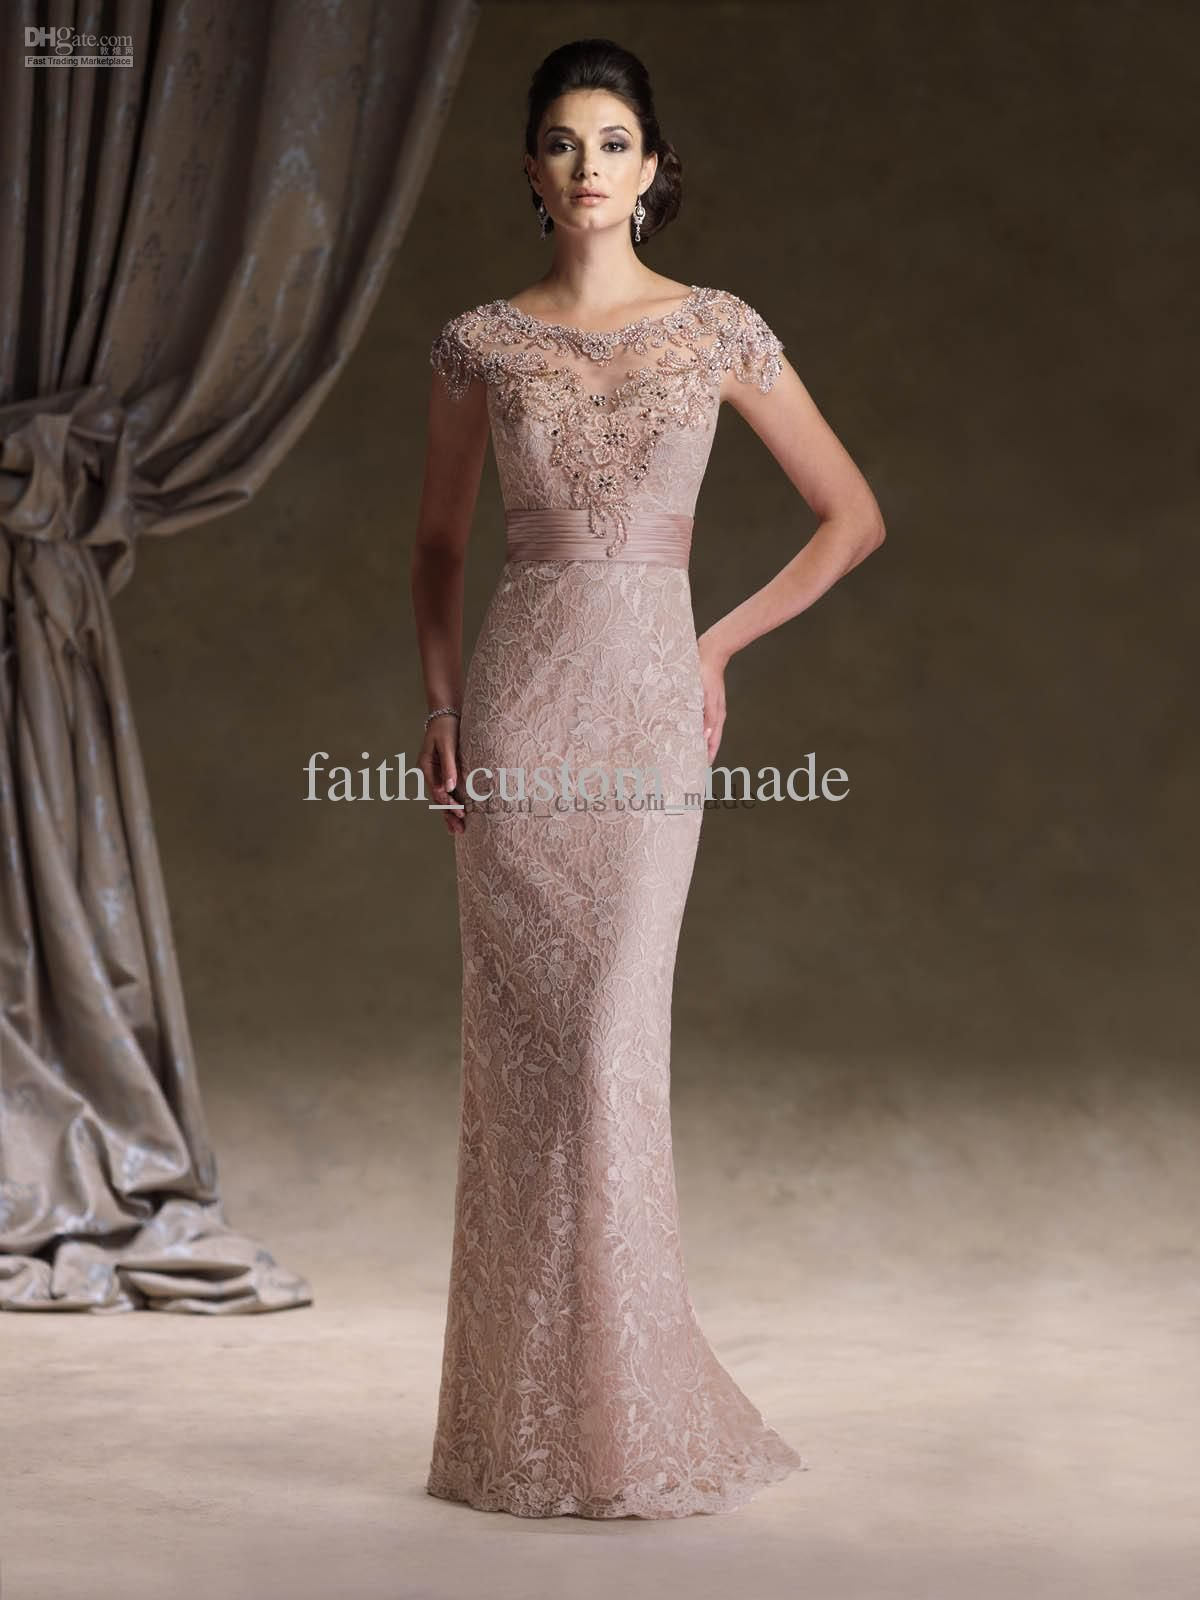 3 4 lace dress mother